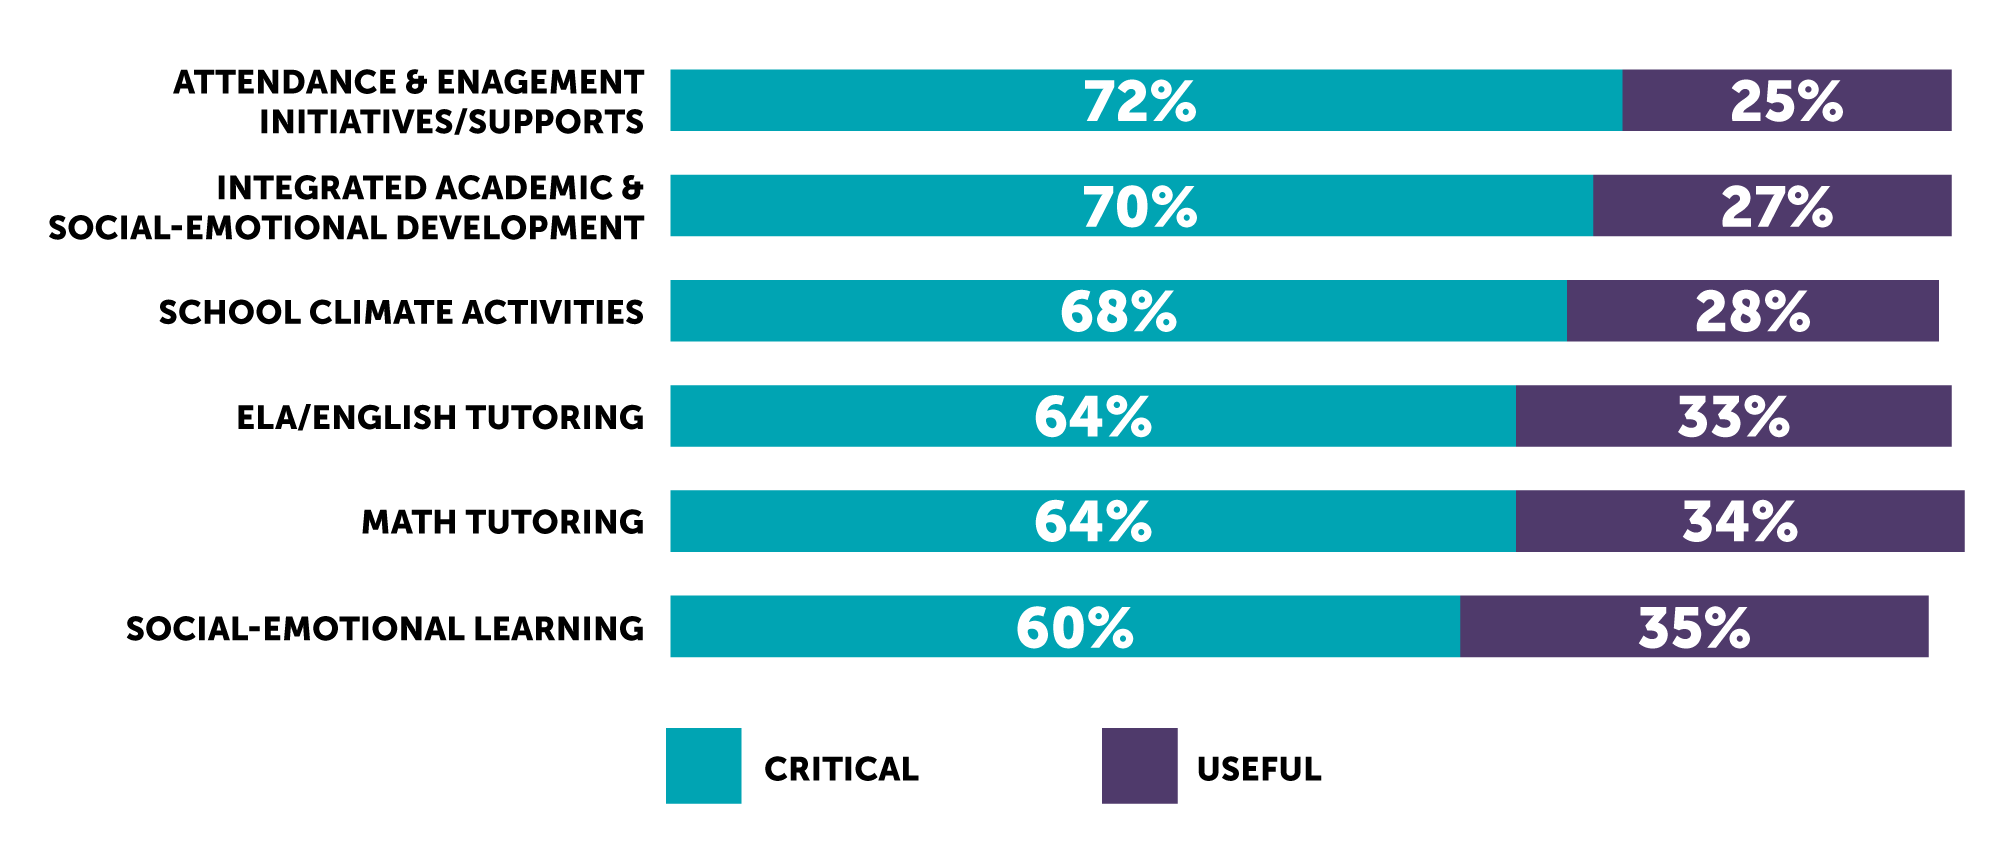 Survey results from principals on City Year efficacy